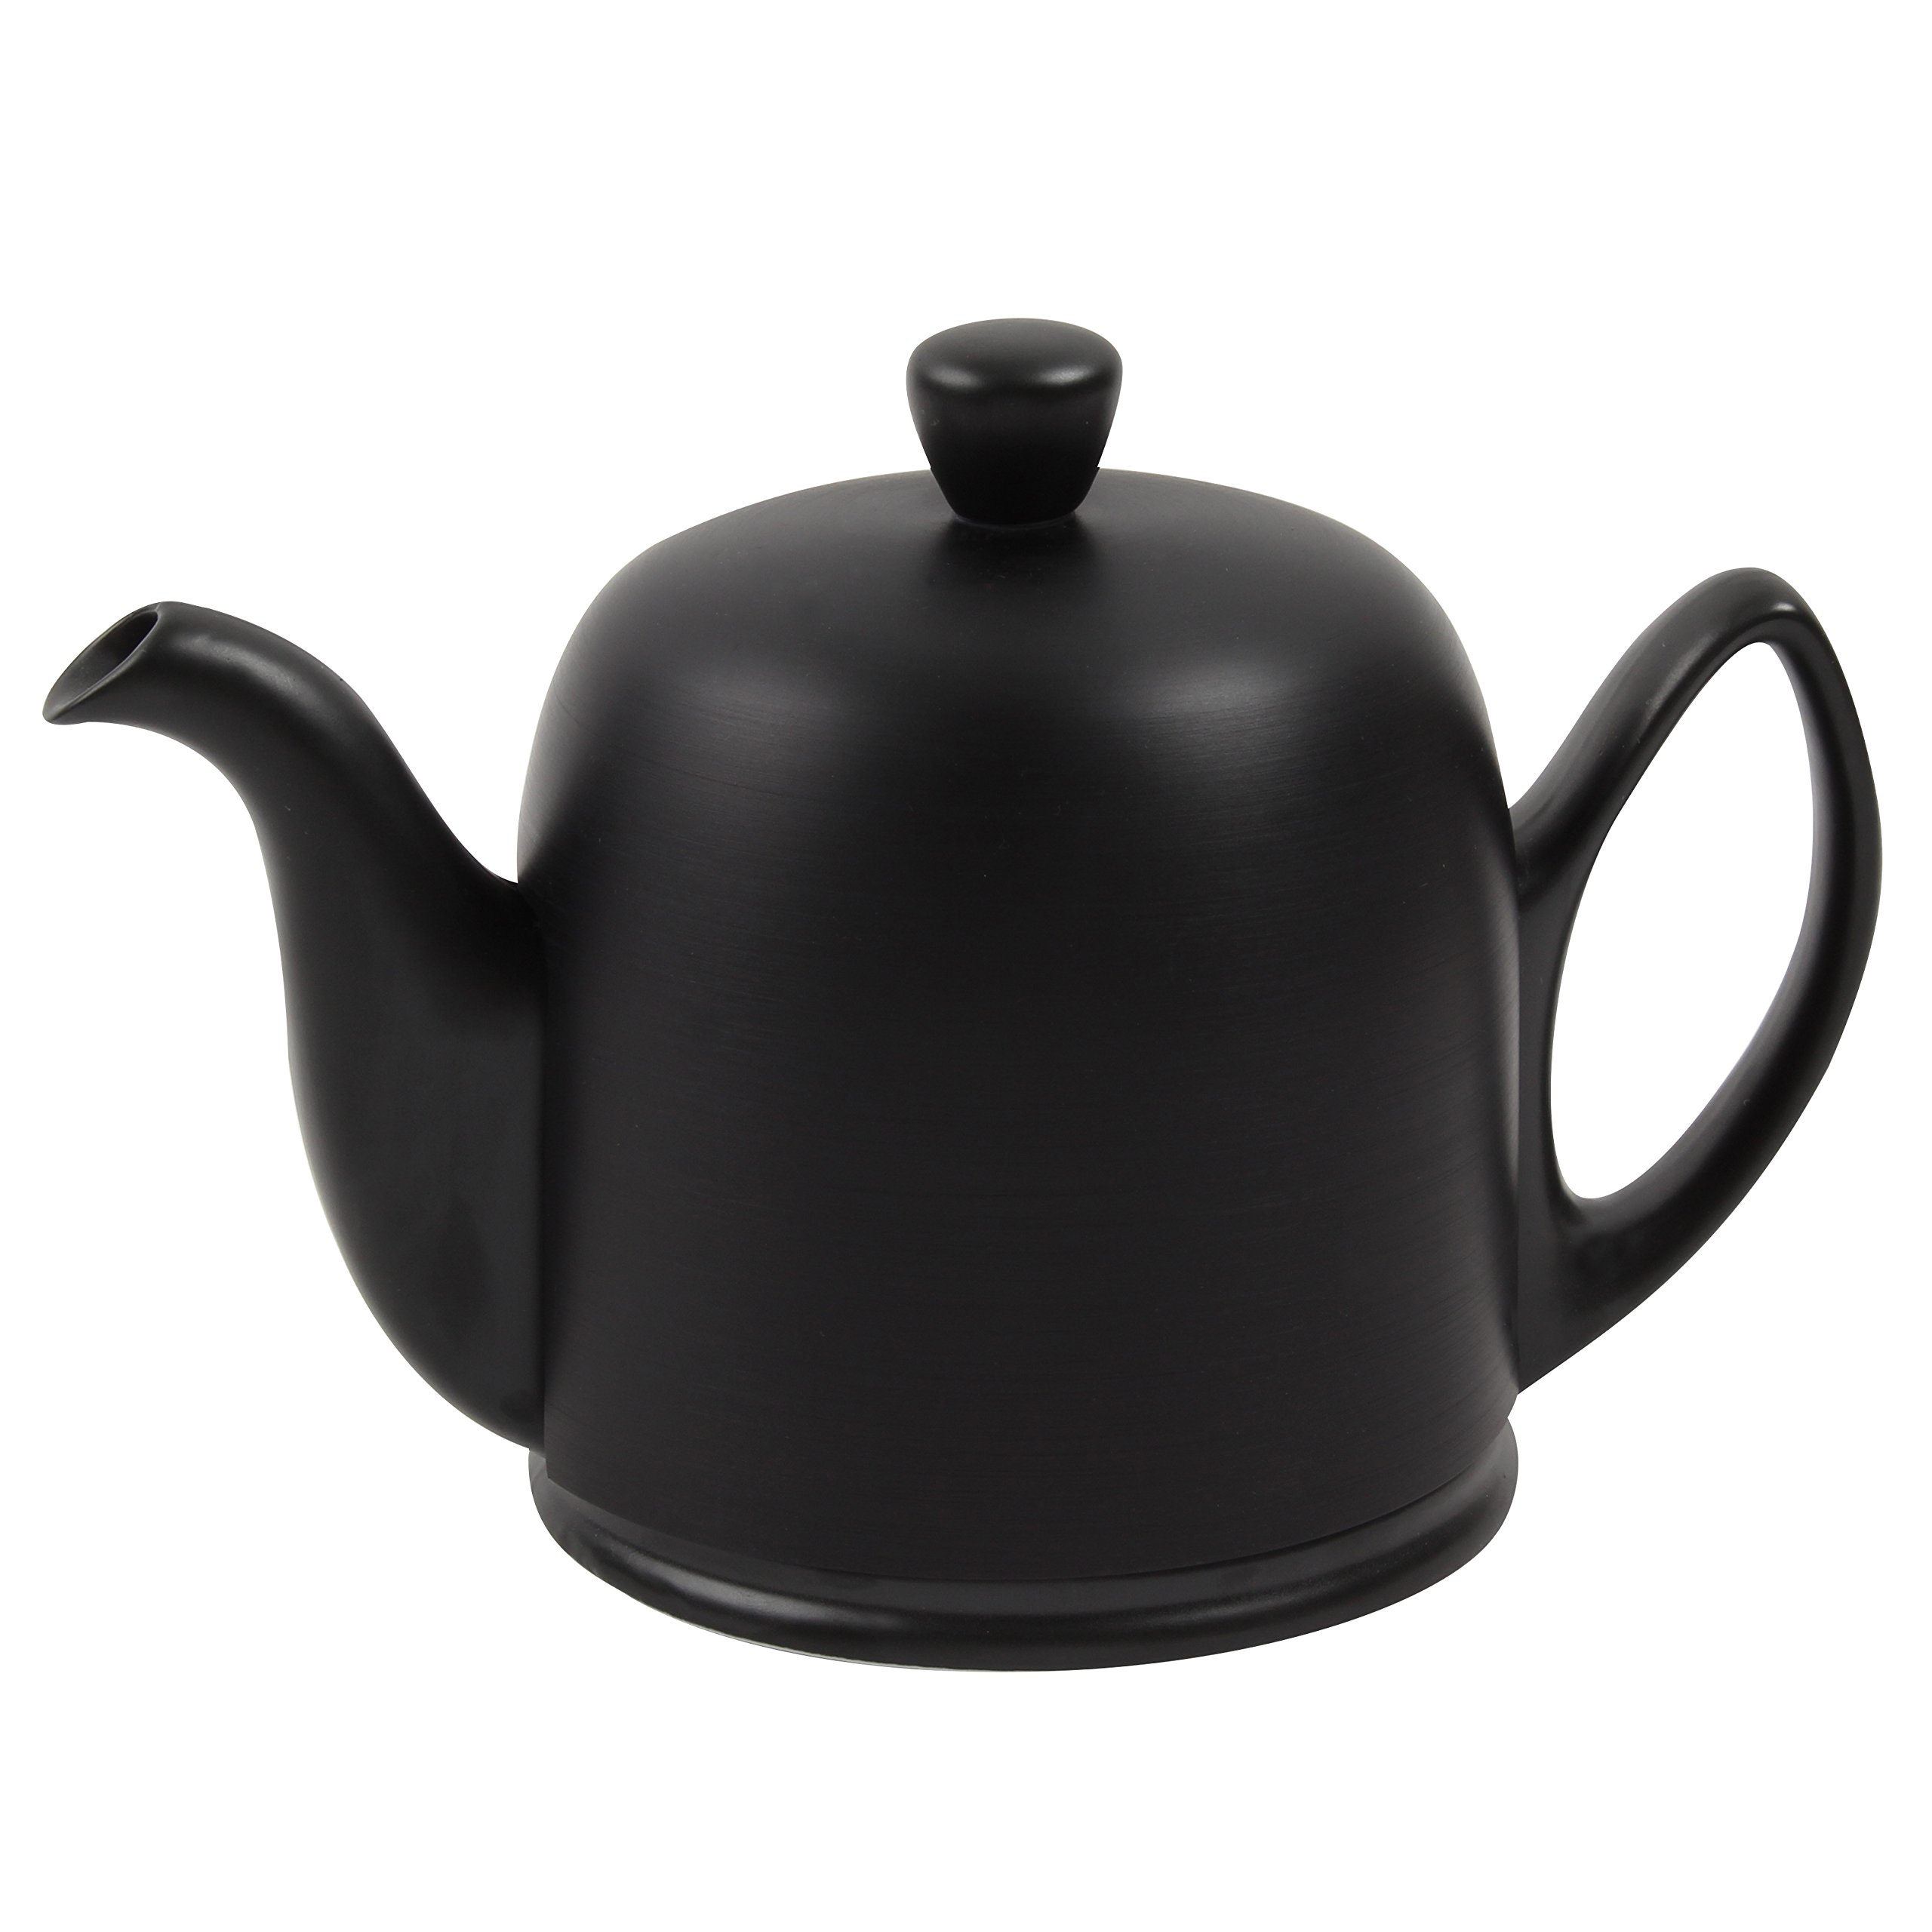 DEGRENNE -  SALAM COLOR Tea Pot Black, Aluminium lid, 6 Cups , 33 oz 13/16